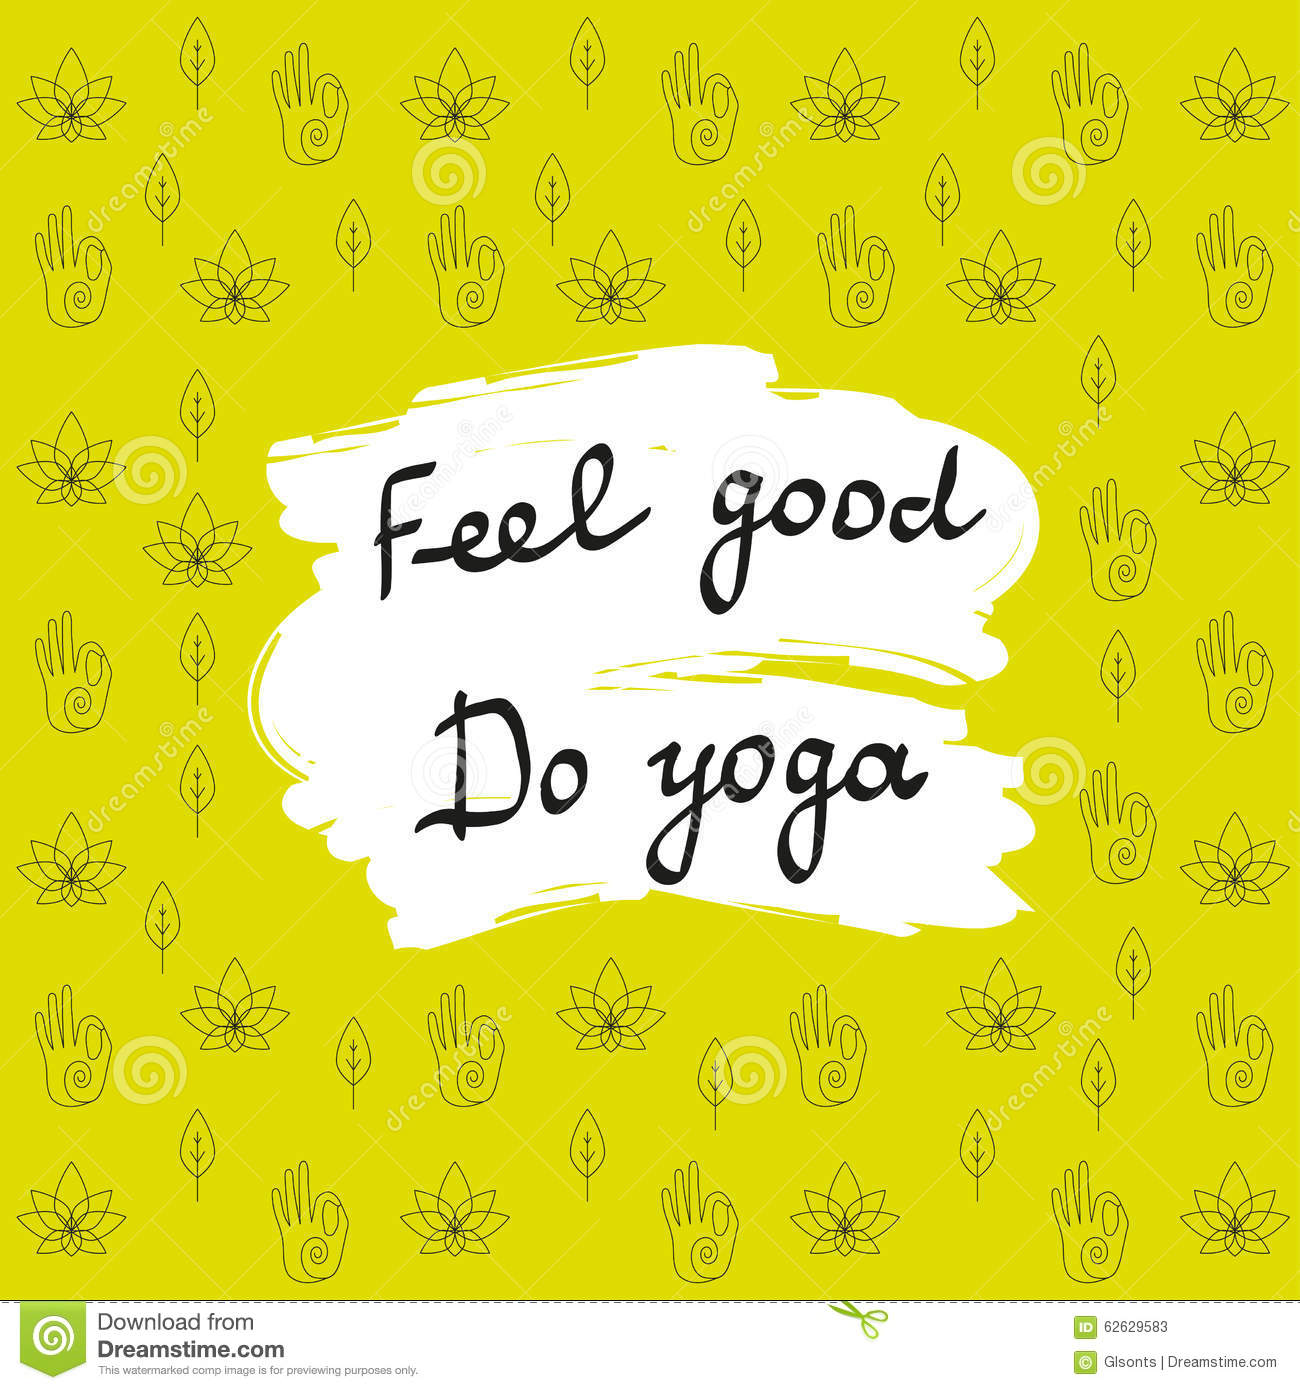 Poster design yoga - Vector Yoga Yoga Poster With Hand Drawn Typography Banner Design With Calligraphic Font For Yoga Studio Yoga Center Or Class C